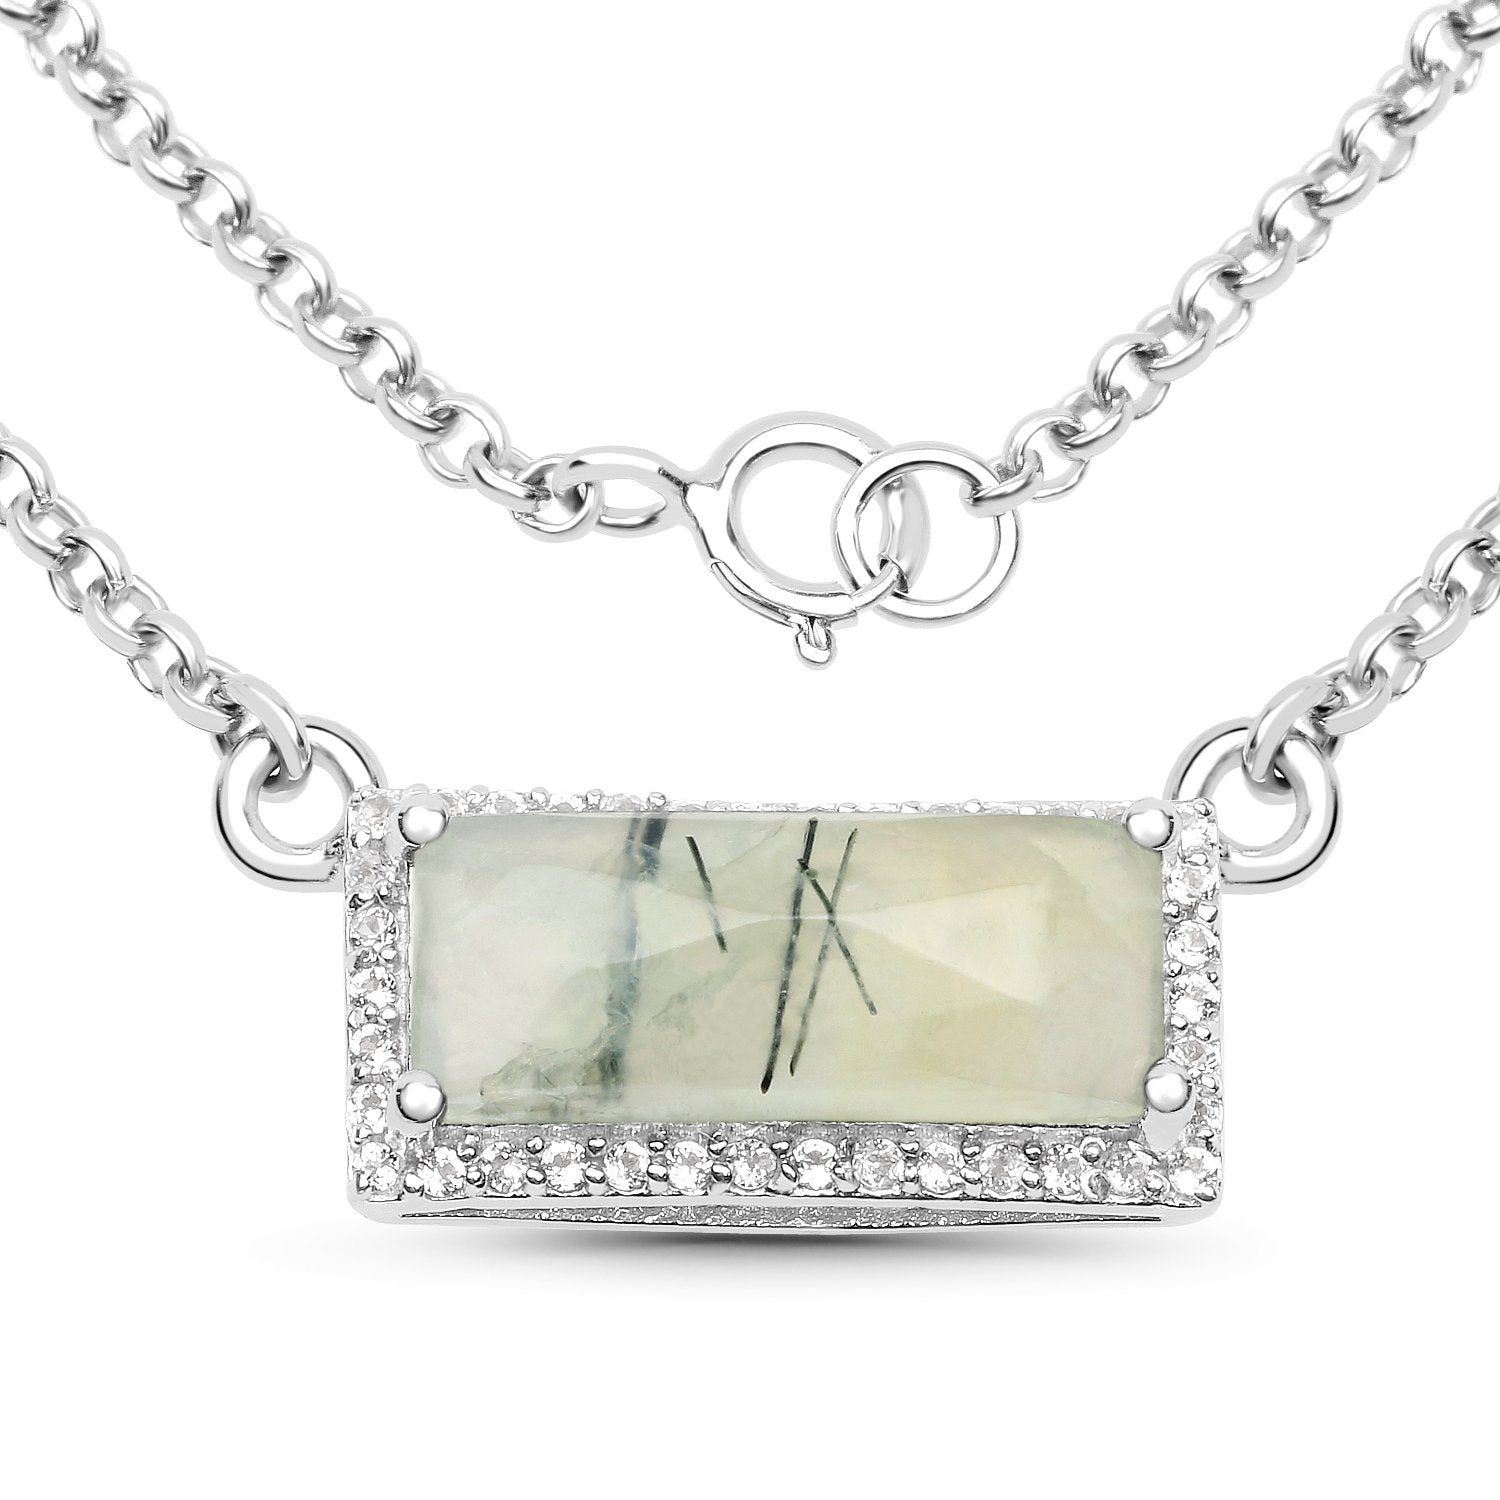 LoveHuang 3.22 Carats Genuine Prehnite and White Topaz Rectangle Bar Necklace Solid .925 Sterling Silver With Rhodium Plating, 18Inch Chain